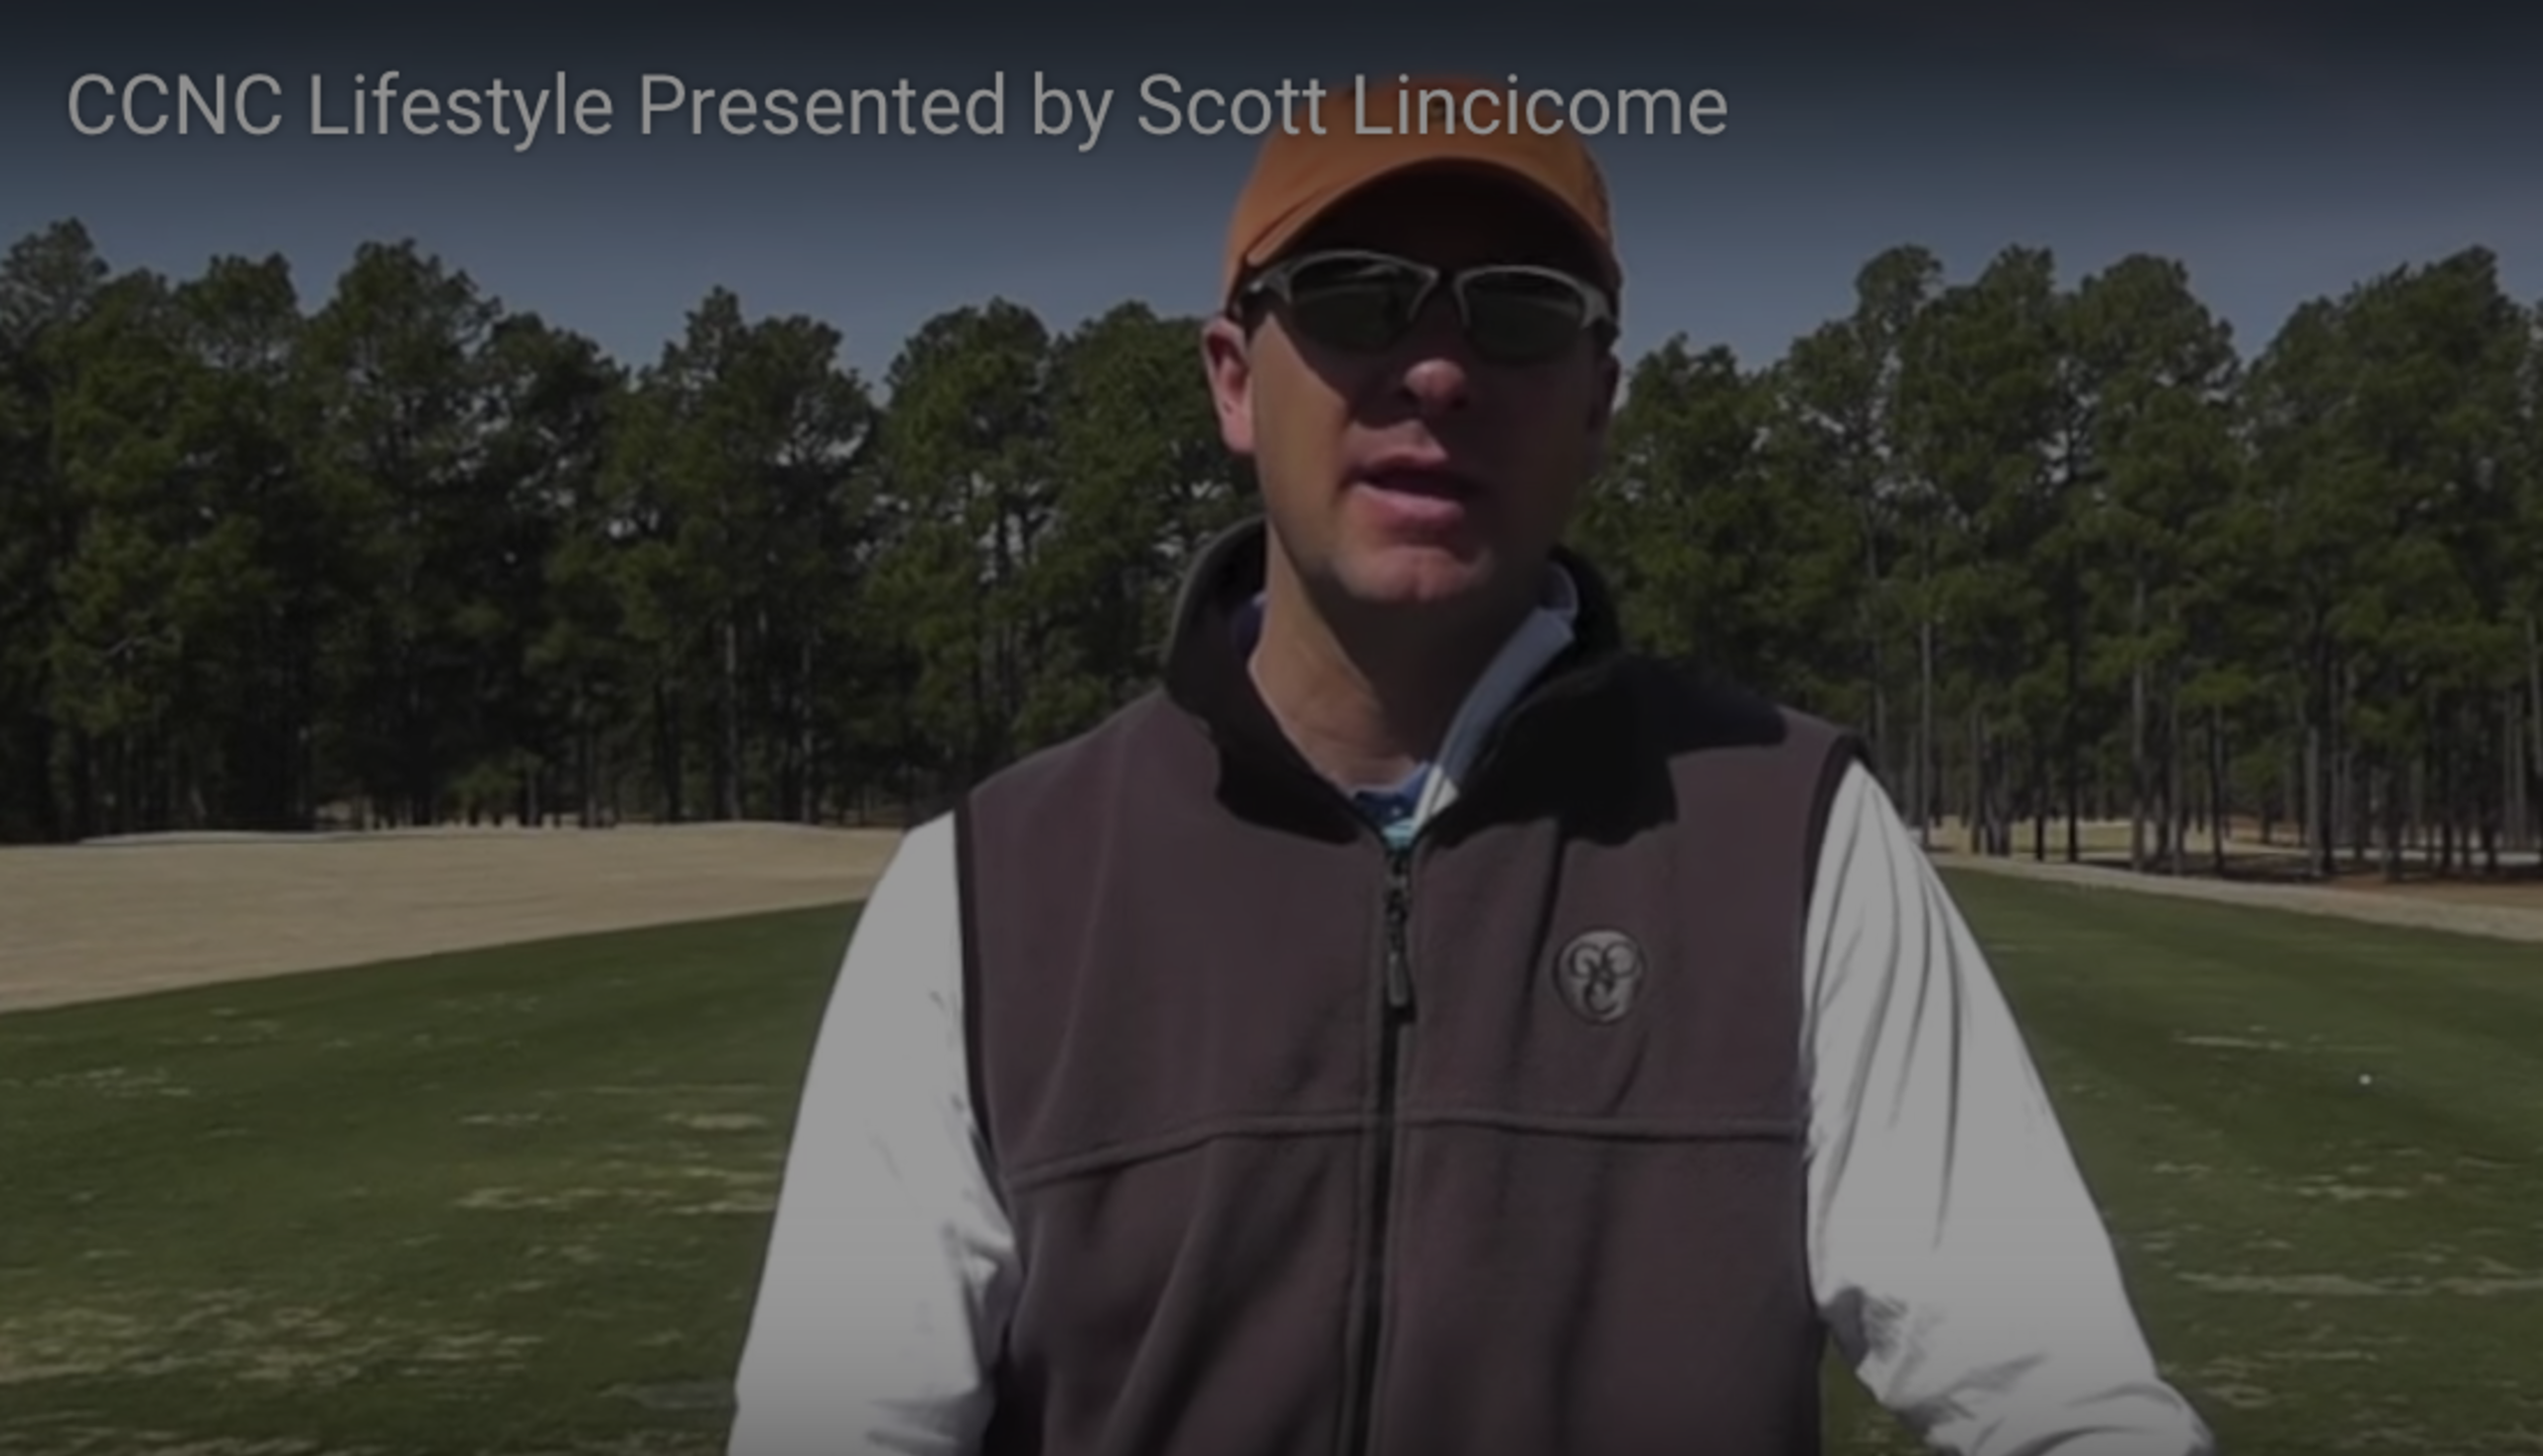 Scott Lincicome talks about the Country Club of North Carolina in Pinehurst NC